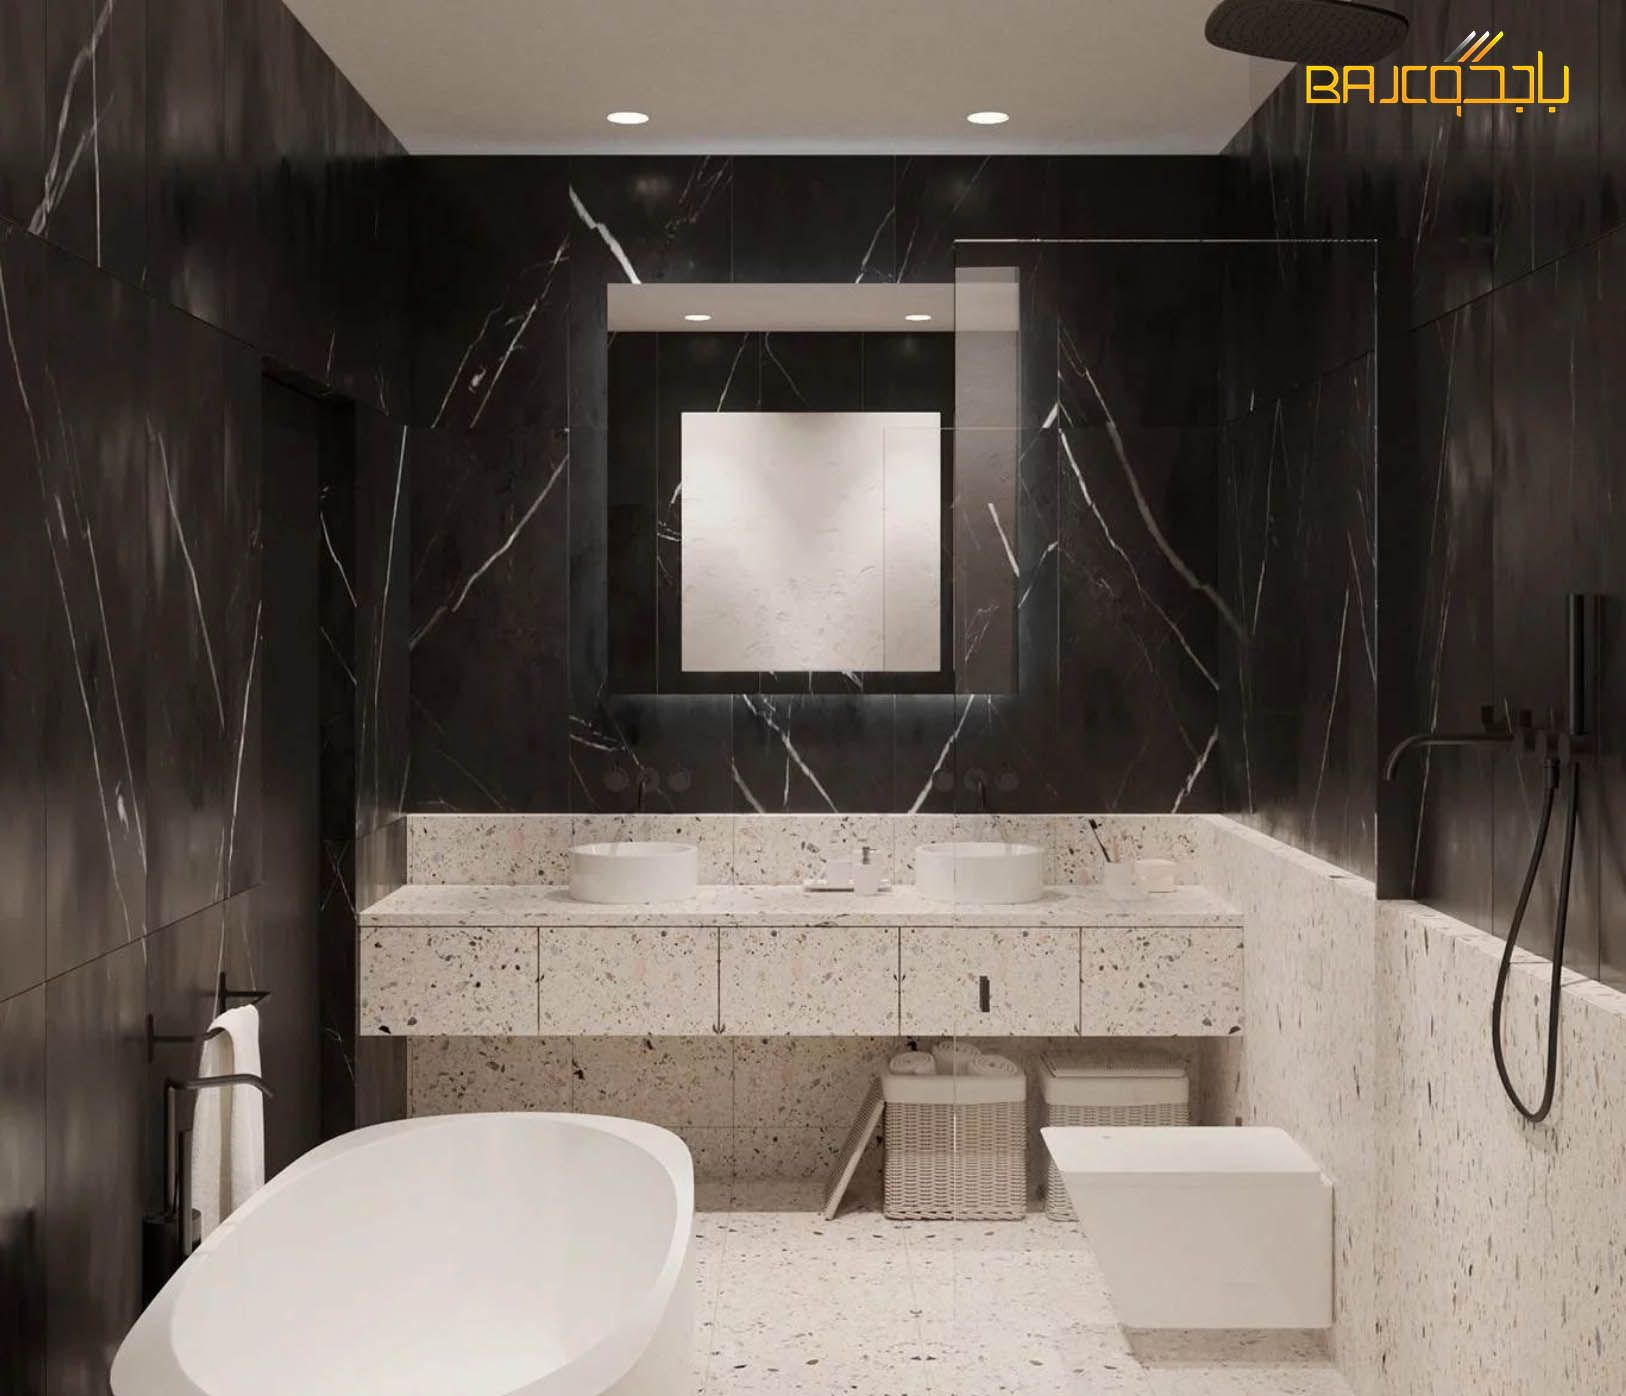 مغسلة تيرازو Bathroom Bathtub Marble